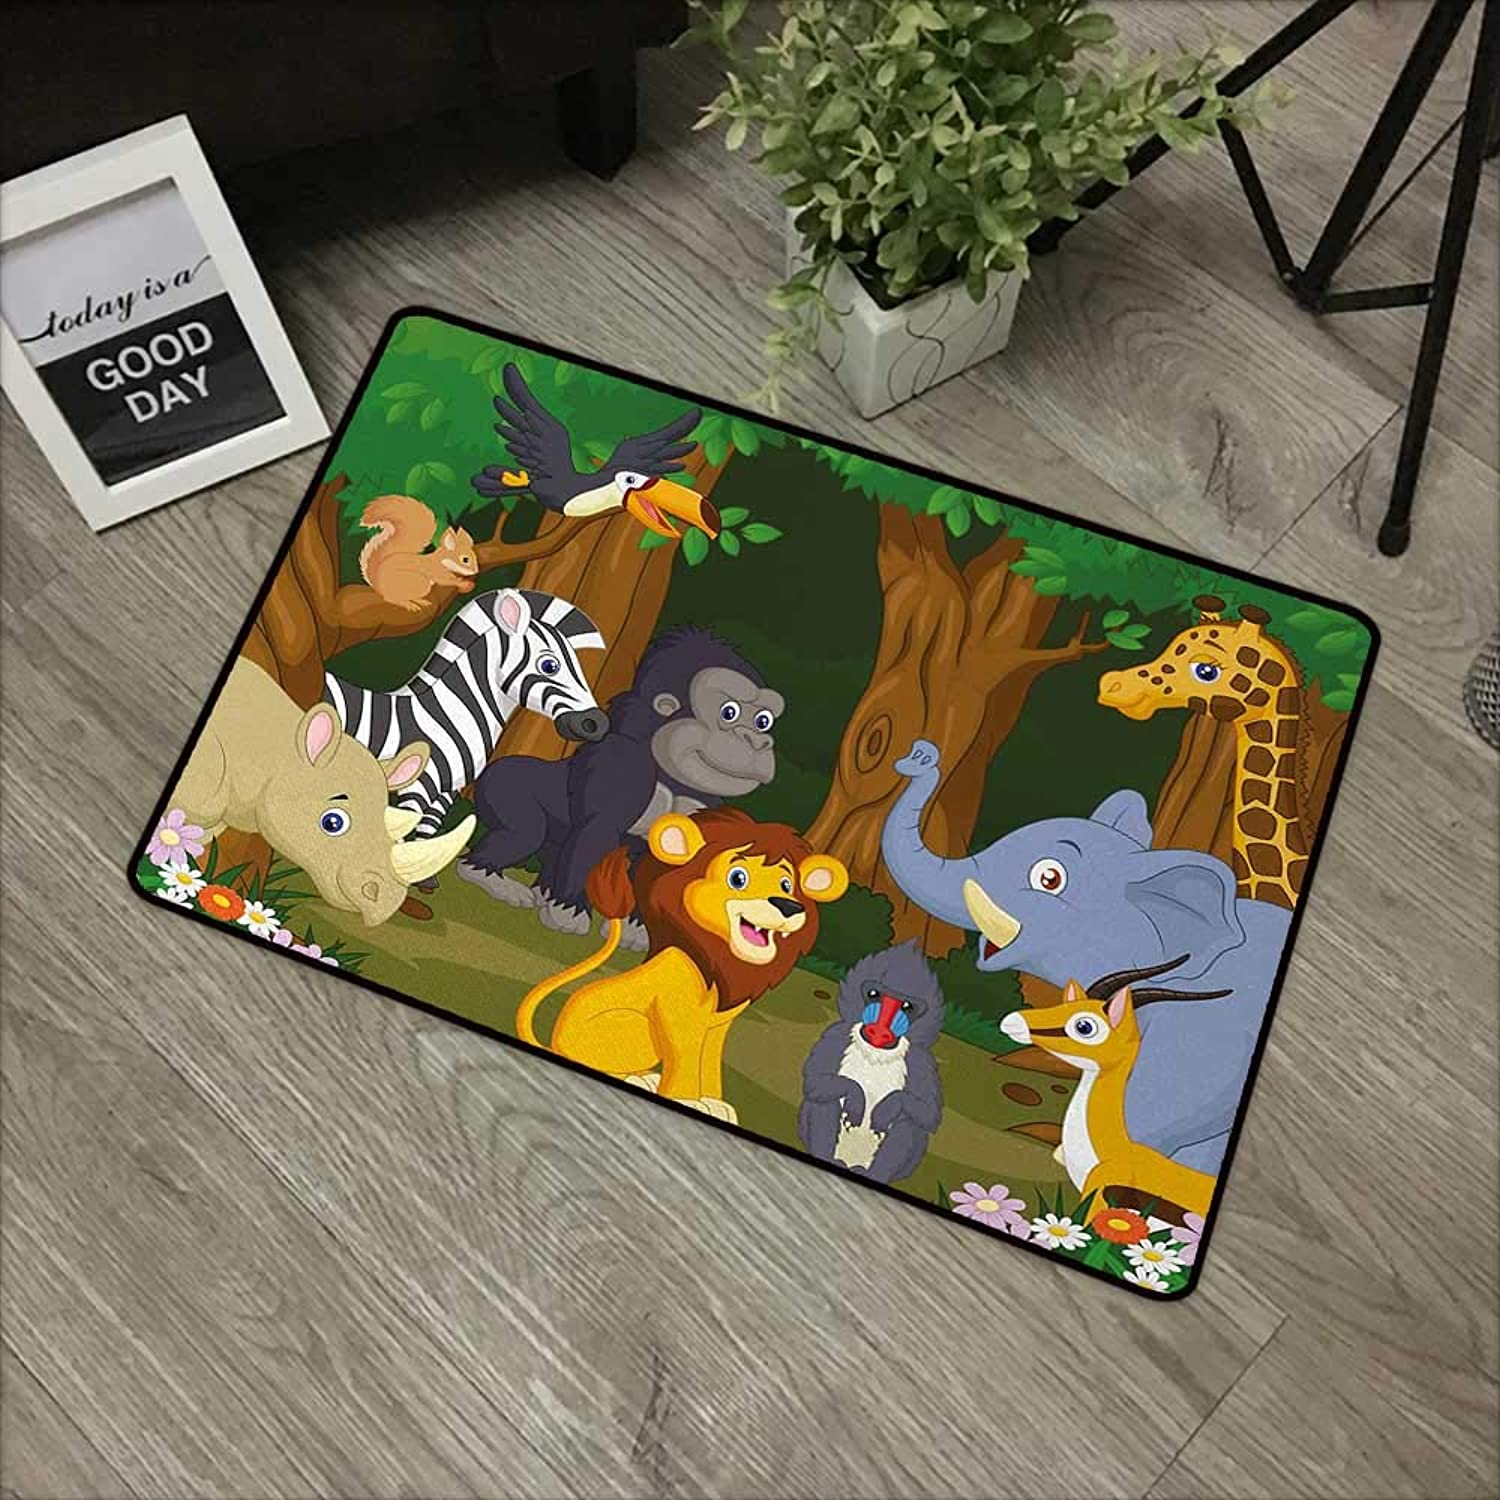 Bathroom mat W35 x L59 INCH Animal,Cartoon Style Elephant Gazelle Giraffe Gorilla Lion Animals Illustration,Brown and Fern Green with Non-Slip Backing Door Mat Carpet